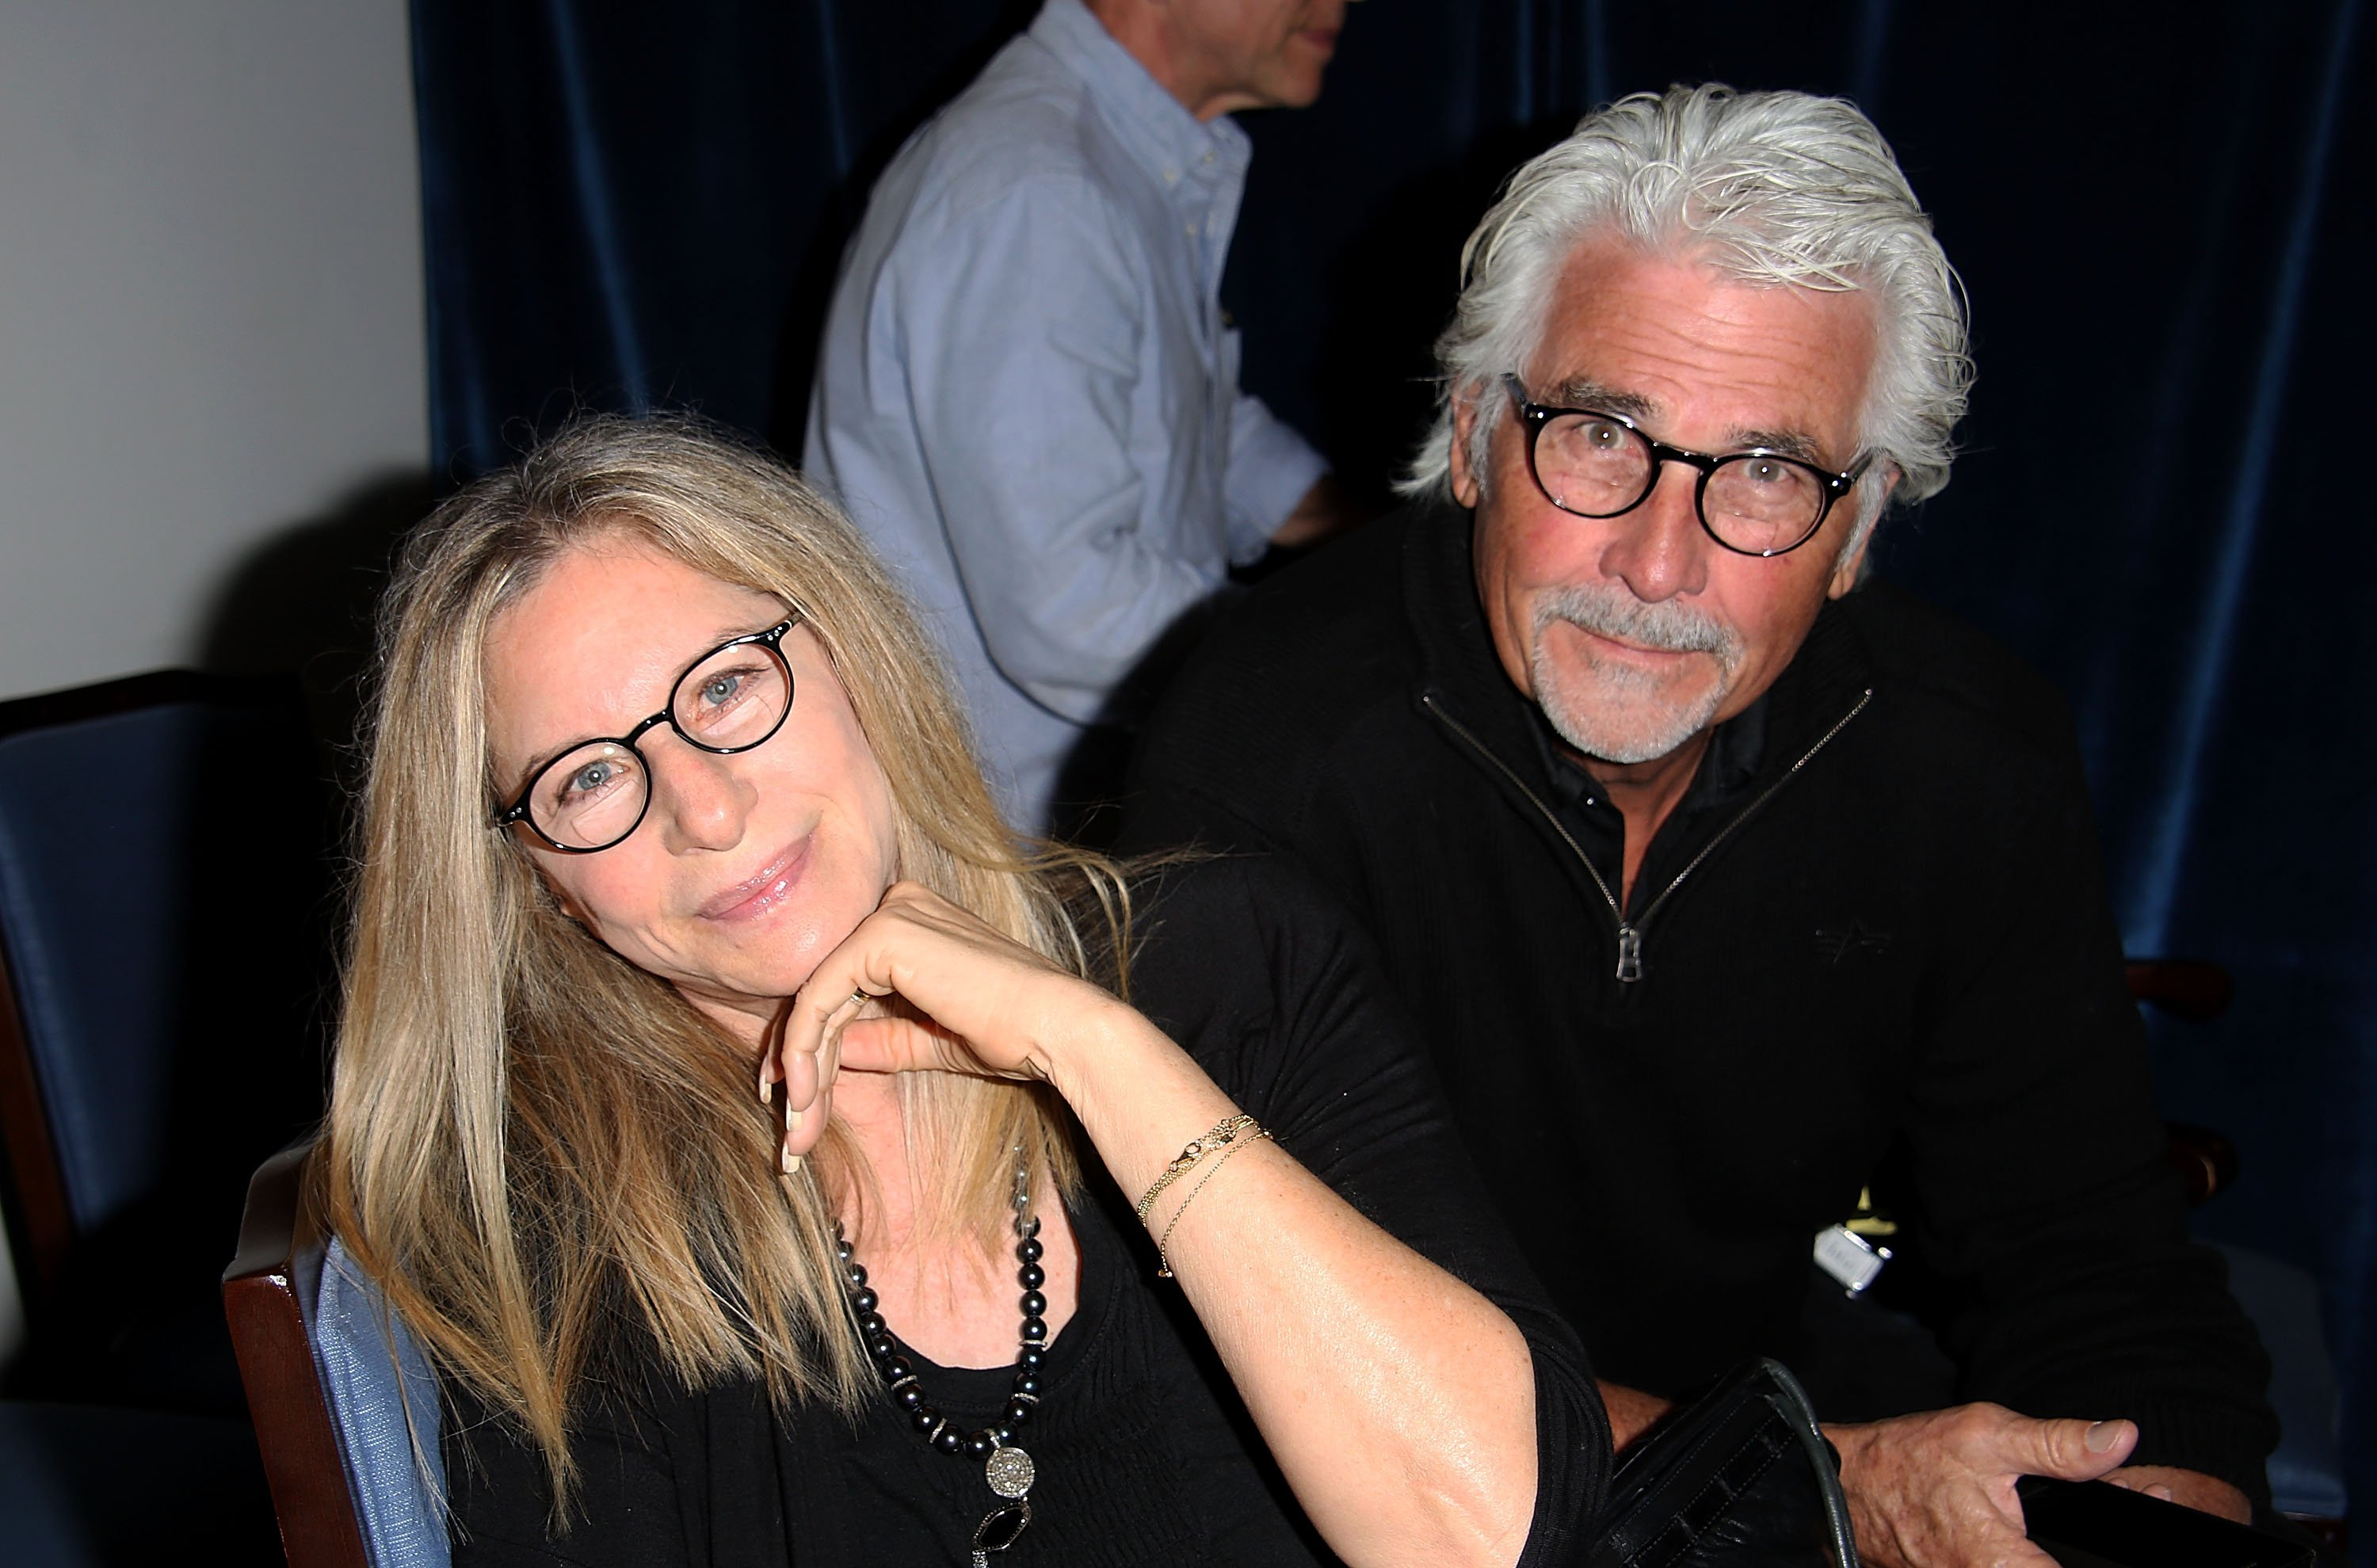 """Barbra Streisand and James Brolin attend the """"And So It Goes"""" premiere on July 6, 2014 